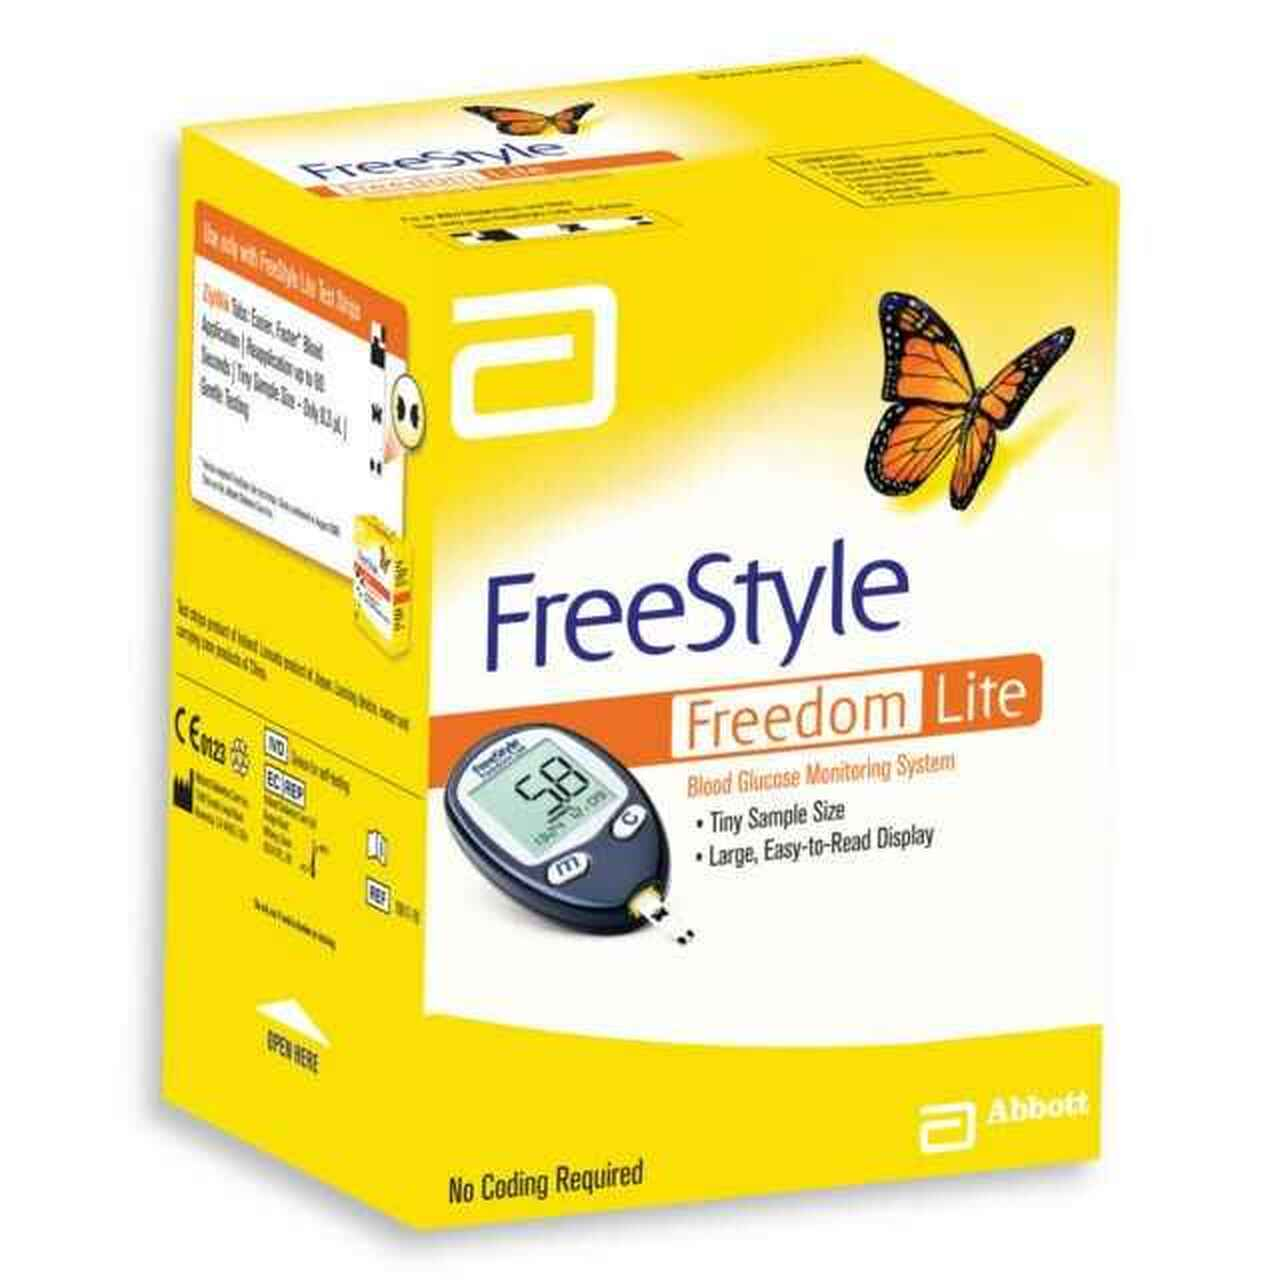 Freestyle Freedom Lite Blood Clucose Monintoring System, Each